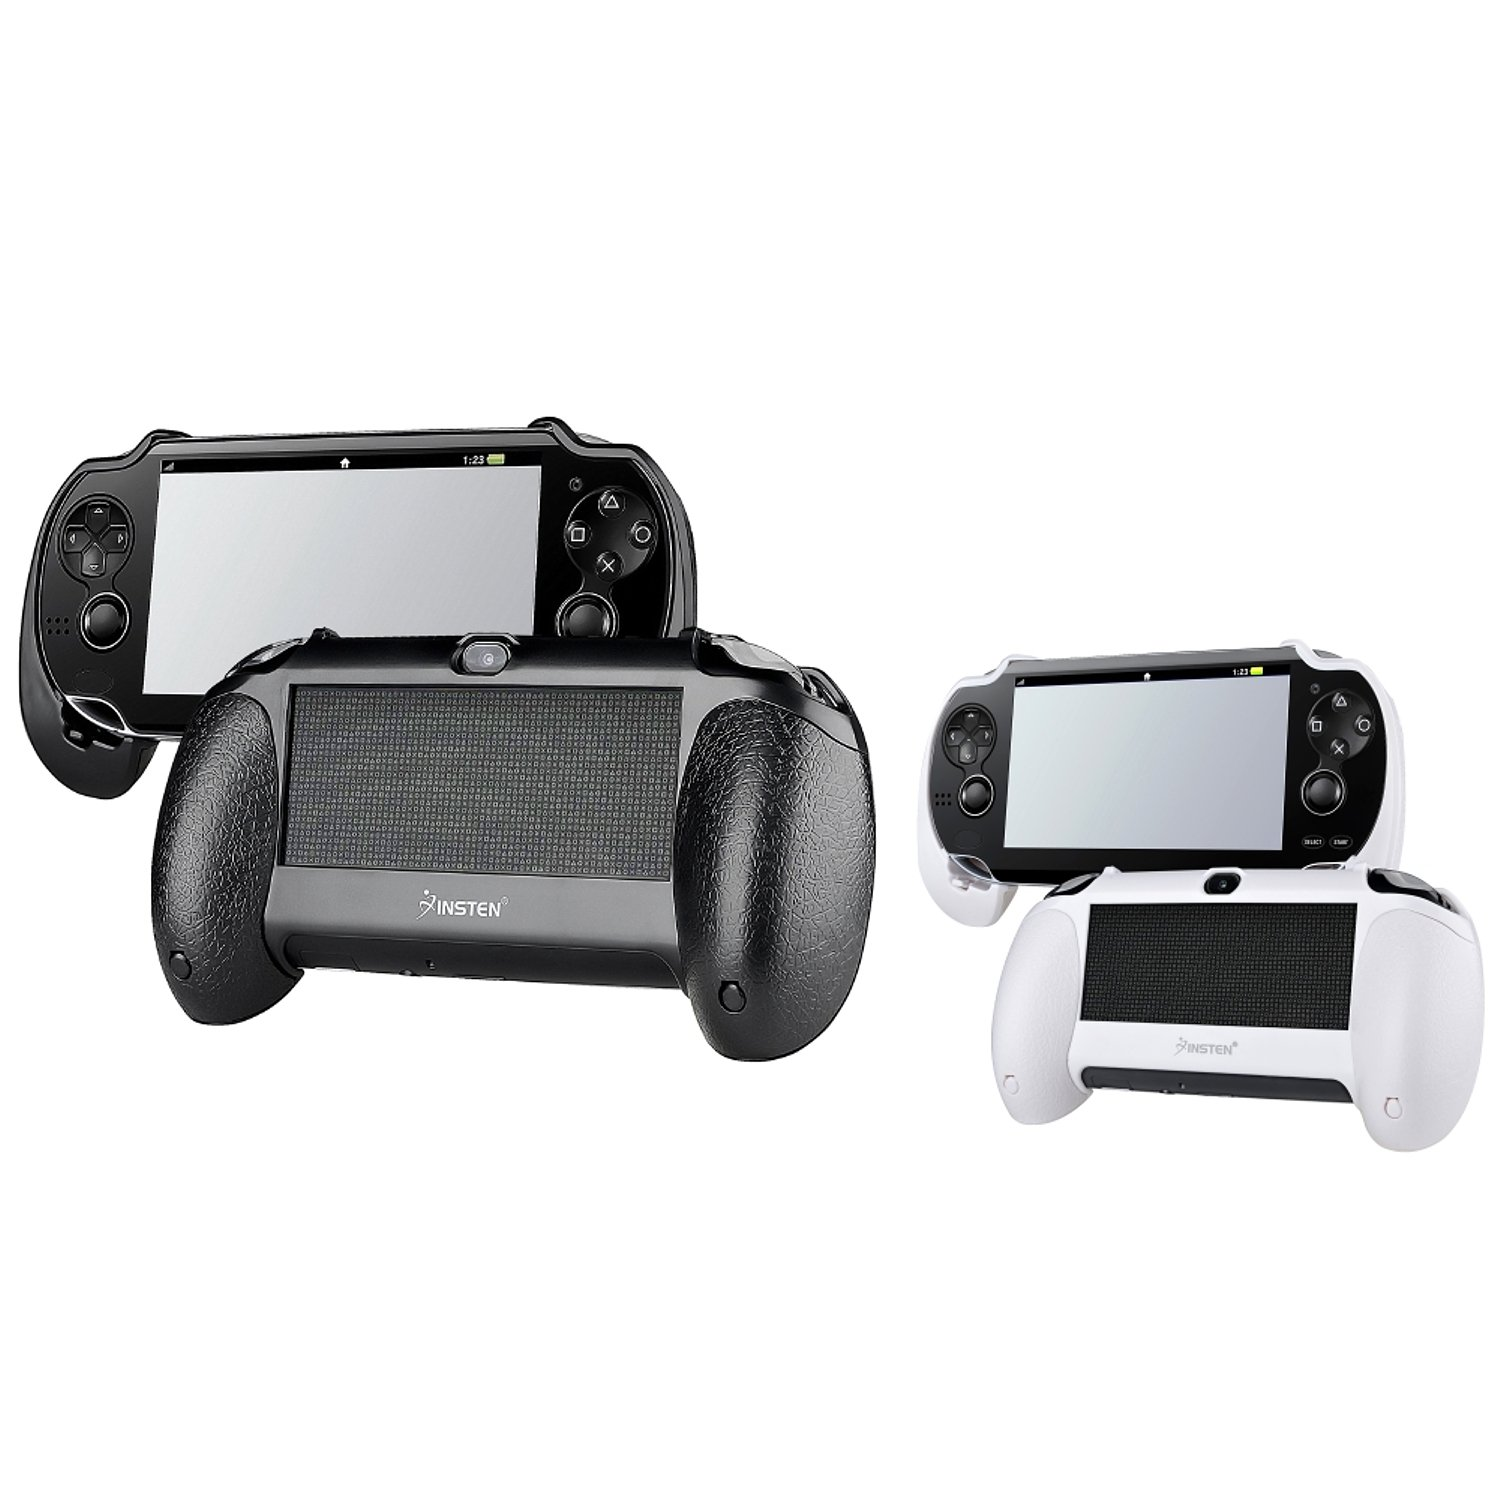 Insten 2 packs of Hard plastic with rubber coating Hand Grip: Black, White Compatible With Sony PlayStation Vita by INSTEN